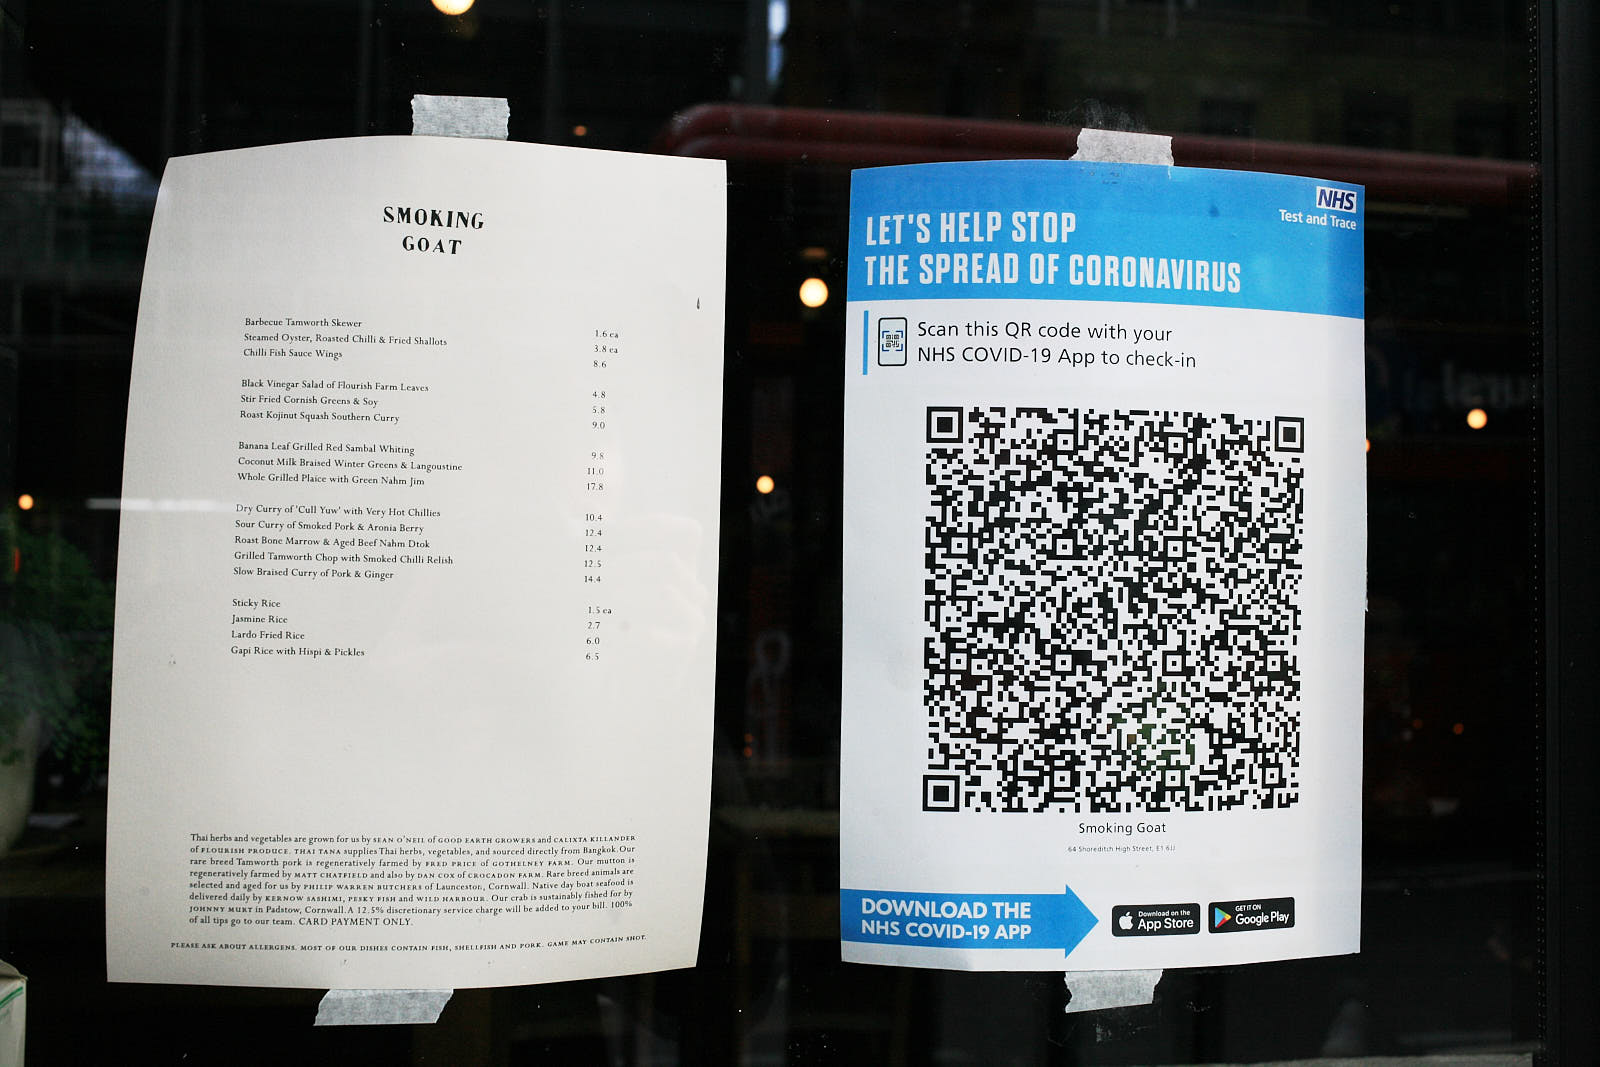 Smoking Goat's menu and safety notice in the window of the restaurant —one of London's best Thai restaurants' safety precautions during the covid-19 pandemic